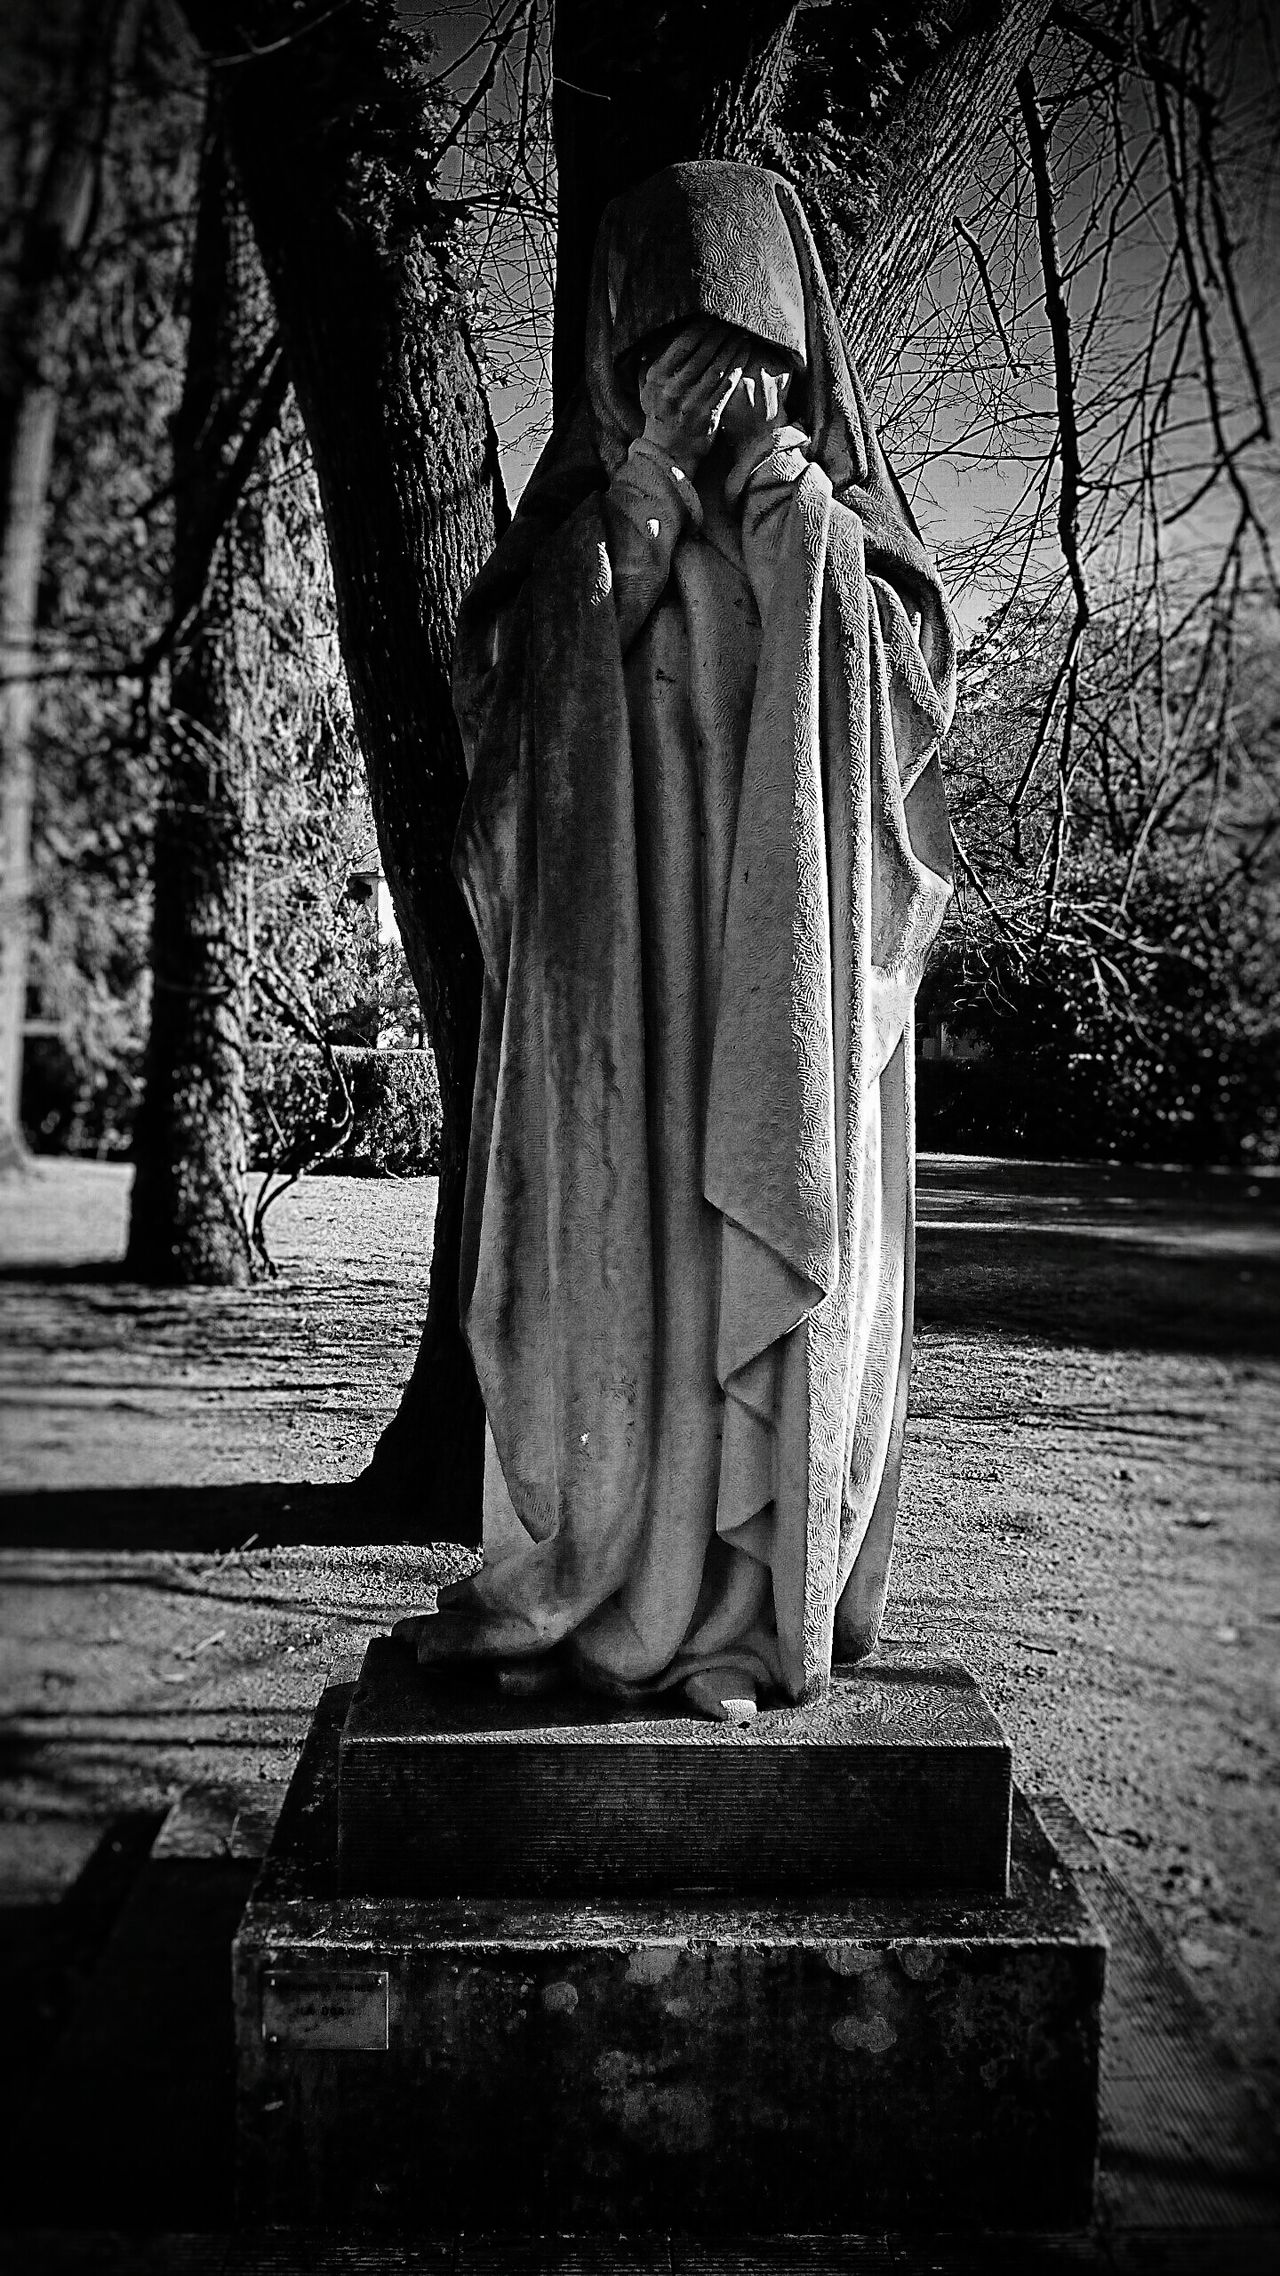 Statue Adult One Person People Tree Outdoors Womanselfie Woman Portraiture Woman Face Cries Chorar Park Blackandwhite Black & White Black And White EyEmNewHere